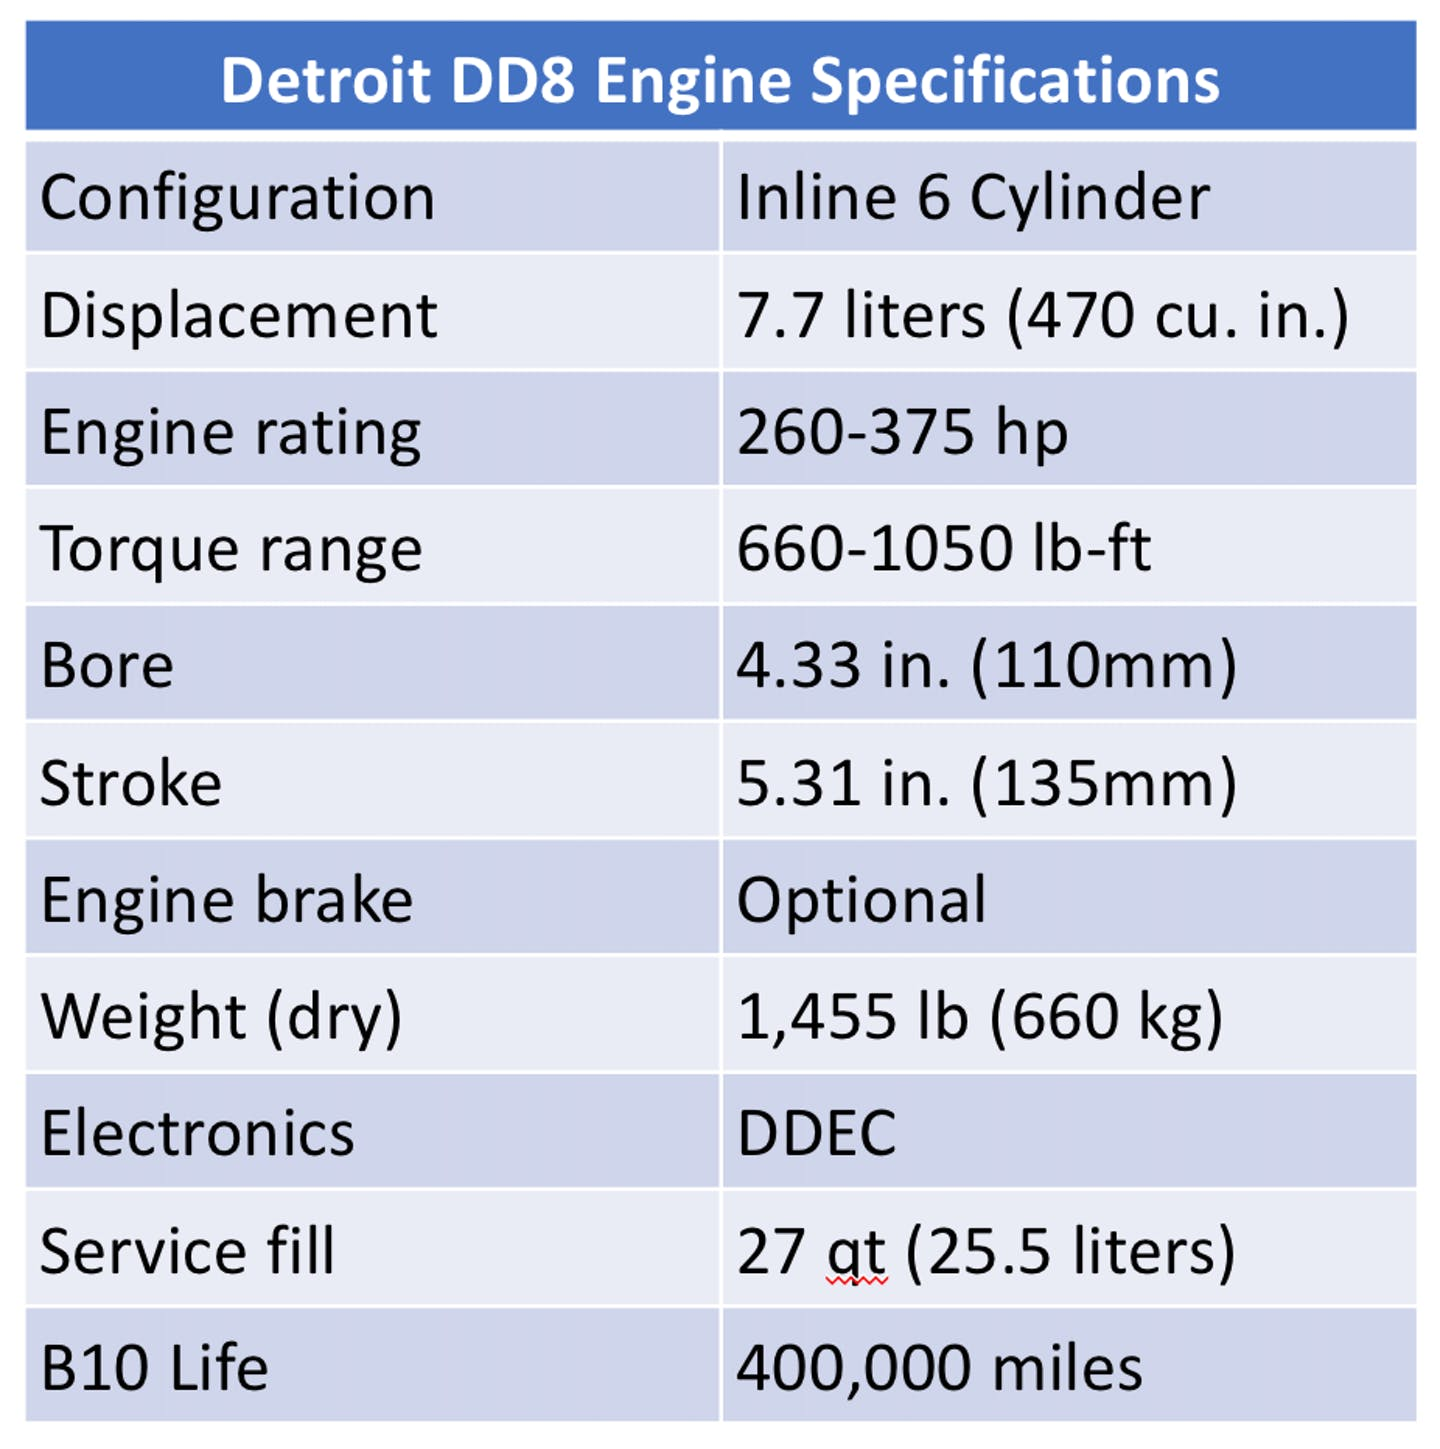 Detroit DD8 Engine Specifications